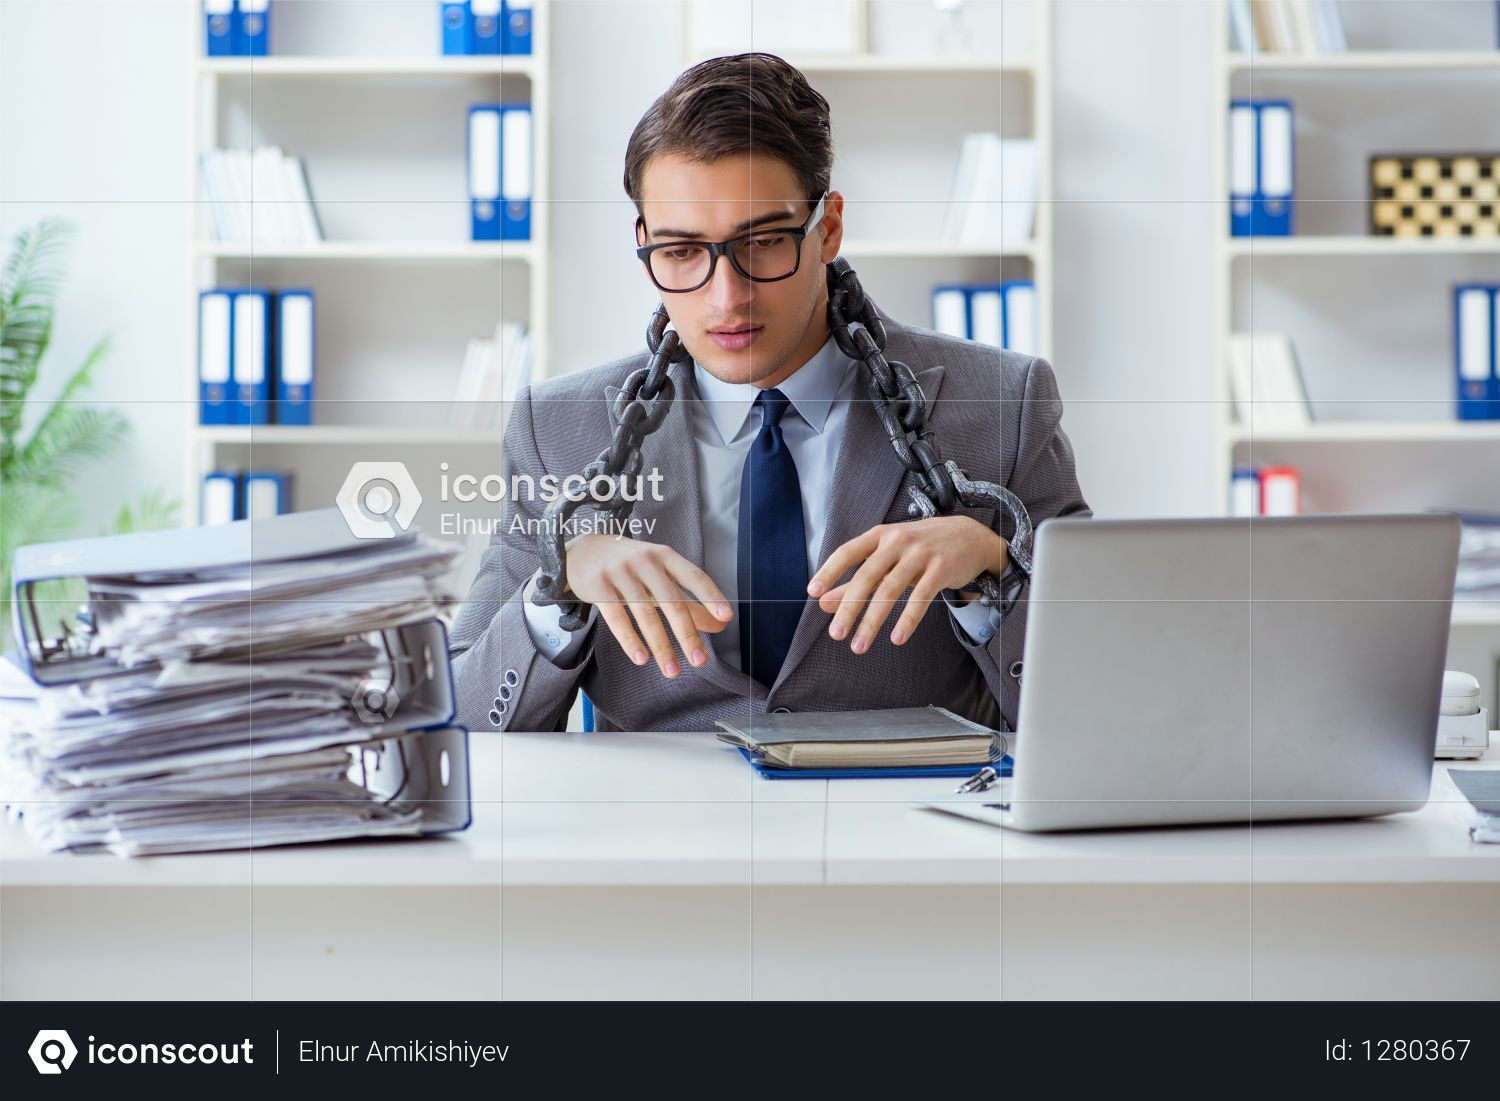 Premium Busy Employee Chained To His Office Desk Photo Download In Png Jpg Format Office Desk Photo Desk